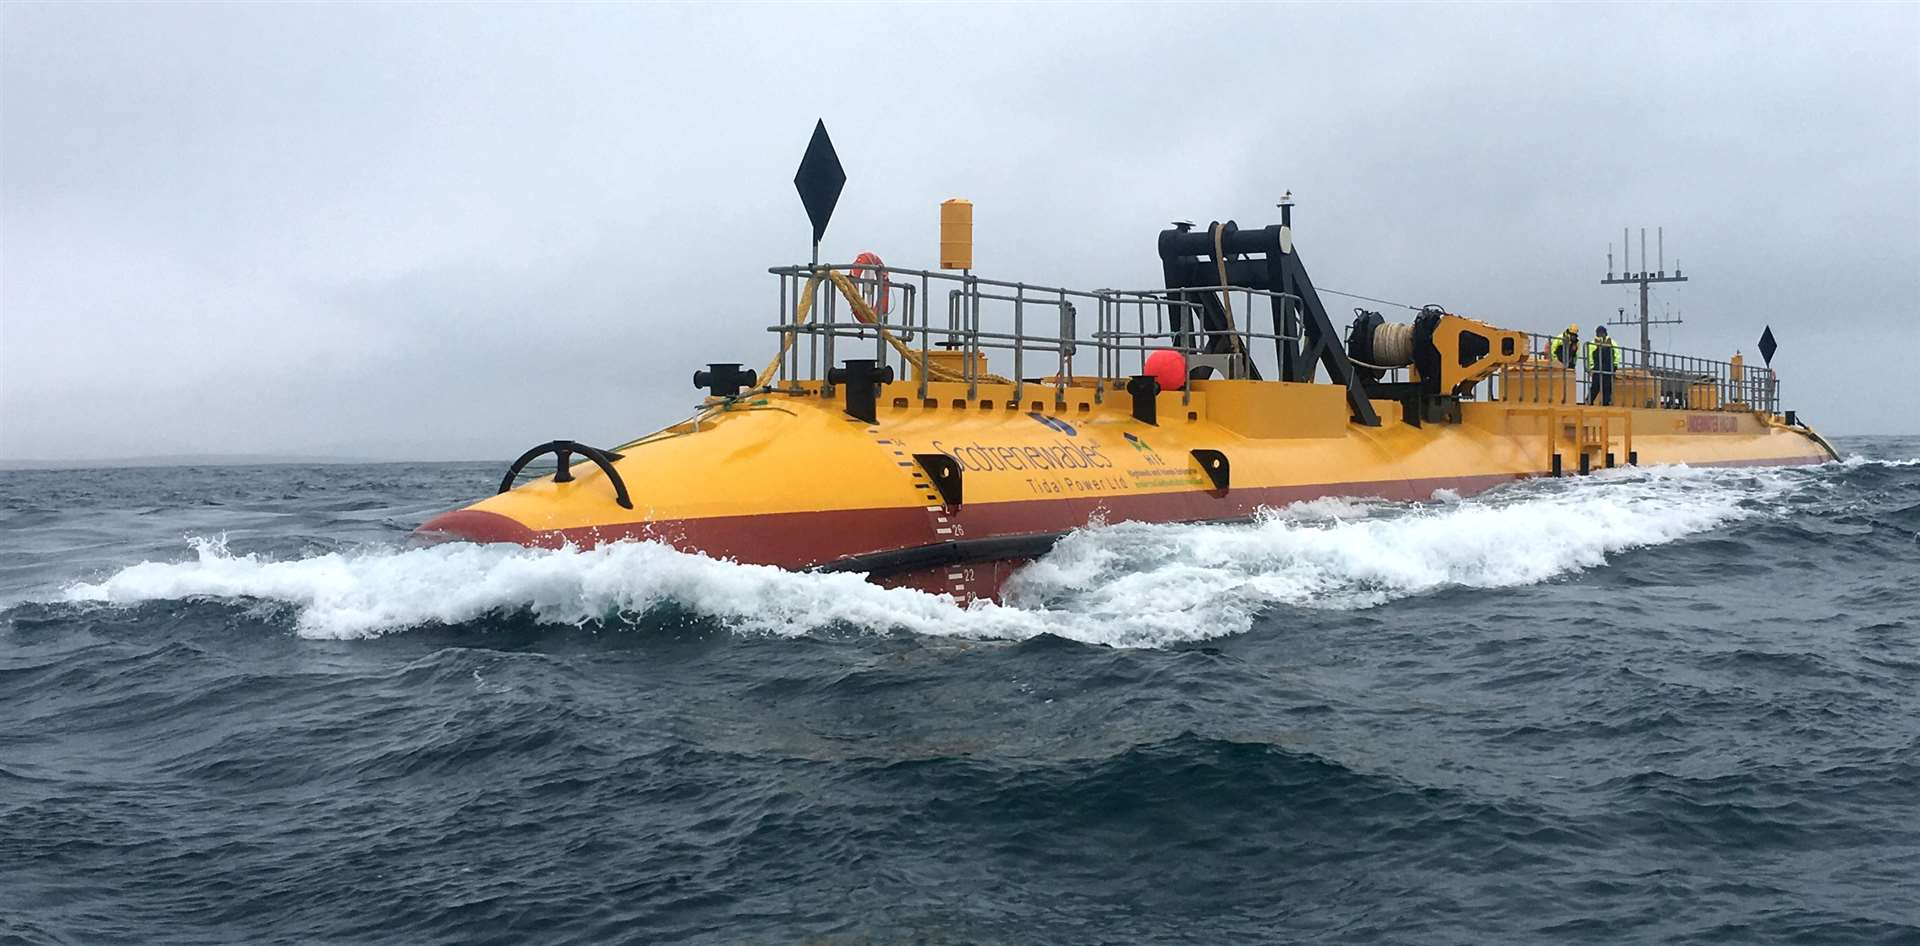 The prototype tidal energy turbine SR2000 was tested at EMEC's Fall of Warness site in Orkney. Picture: Orbital Marine Power